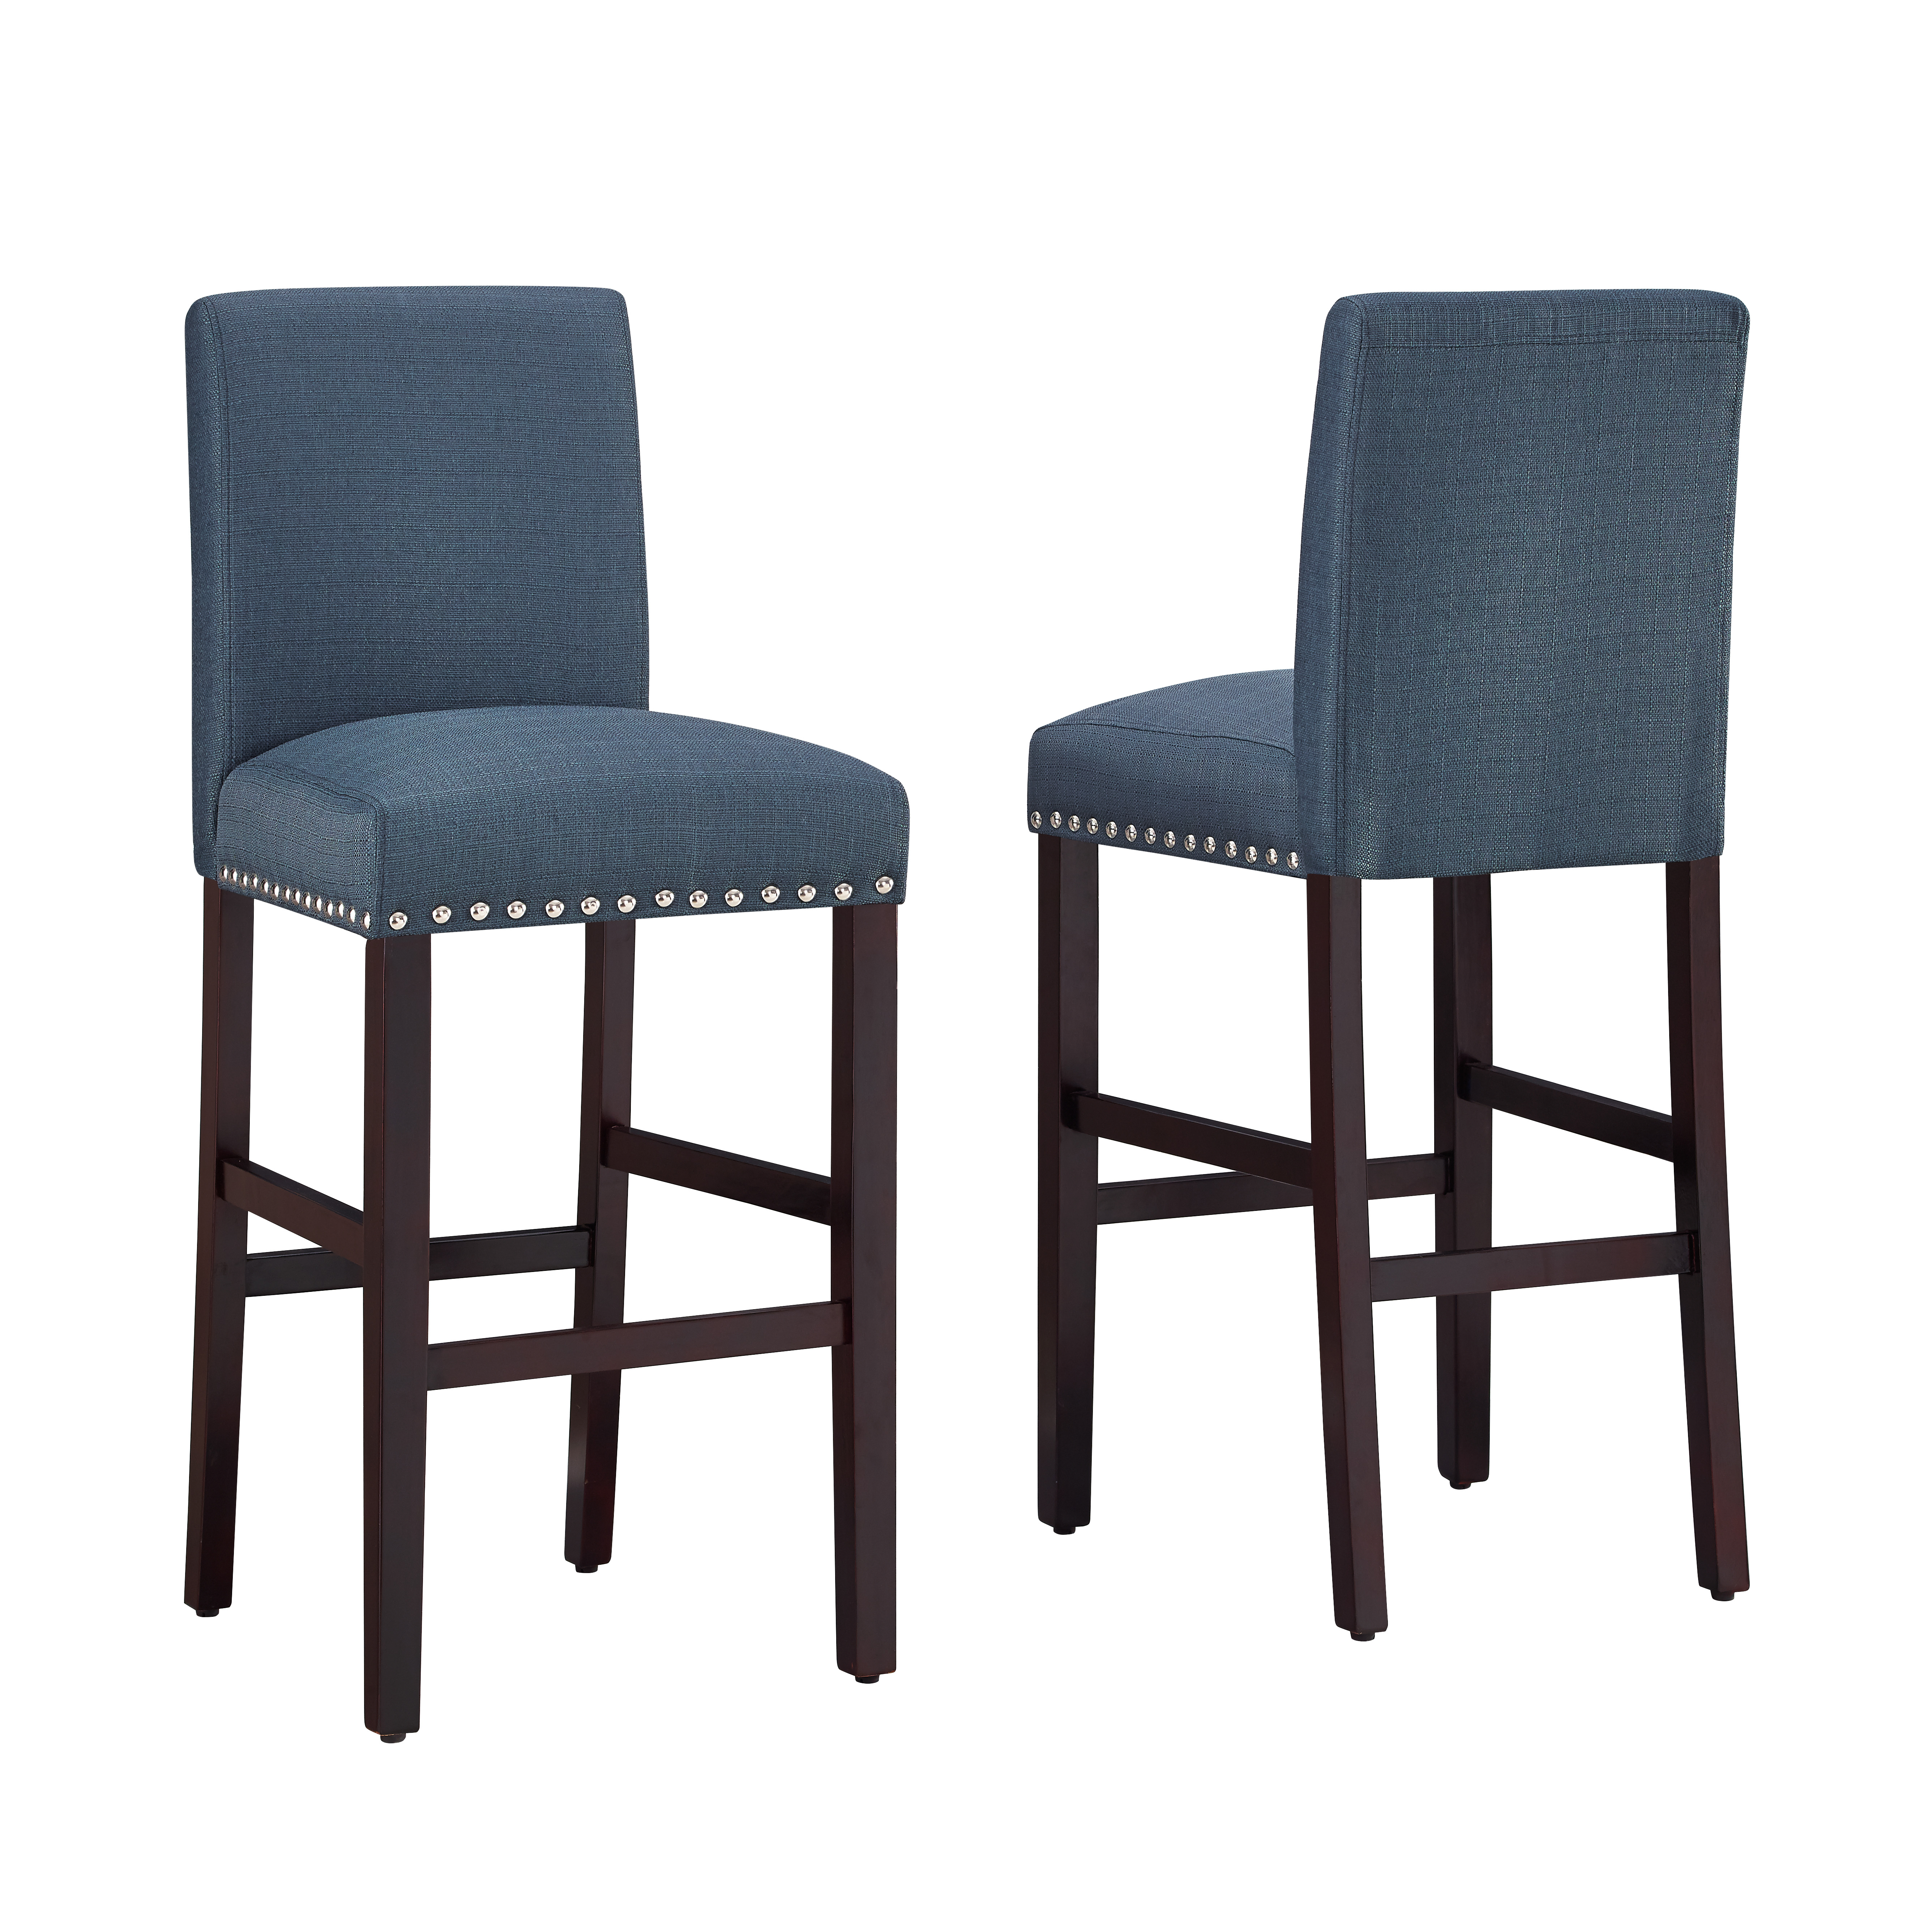 Exceptionnel DHI Nice Nail Head Upholstered Bar Stool (2PK), Multiple Colors Image 1 Of